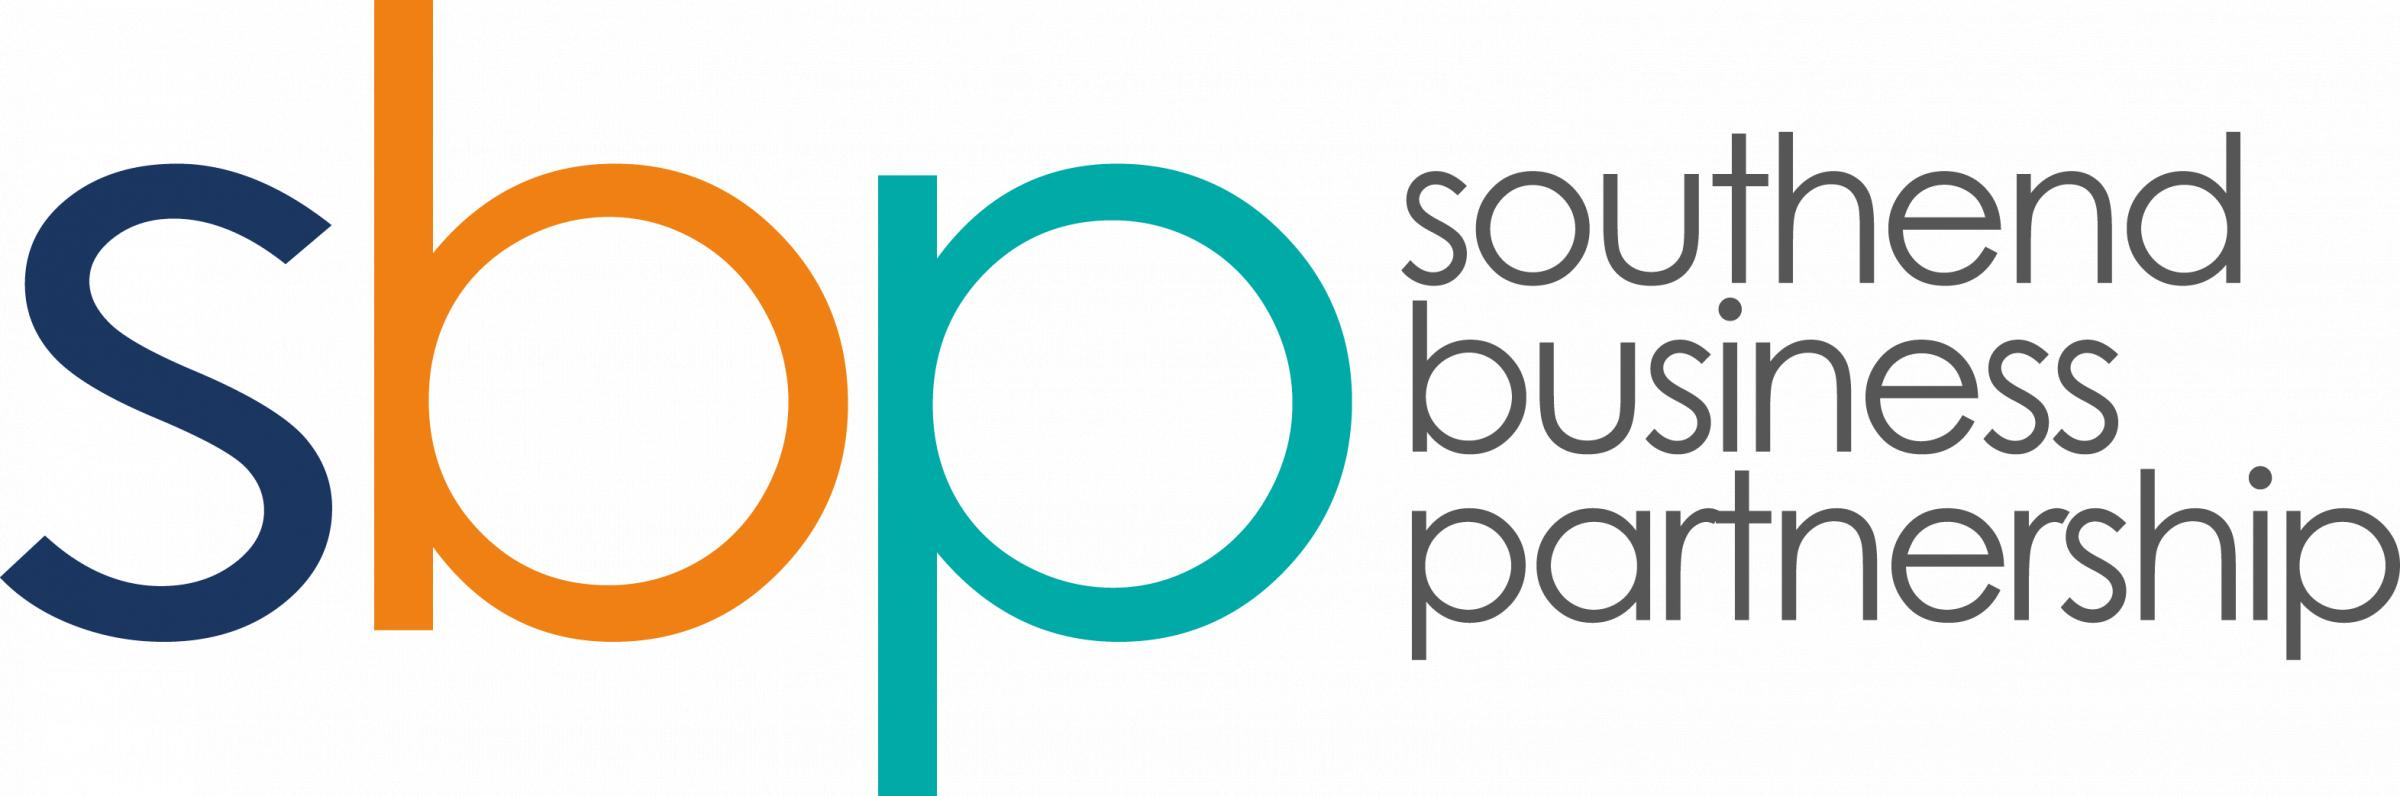 Southend Business Partnership - Briefing/Networking Event